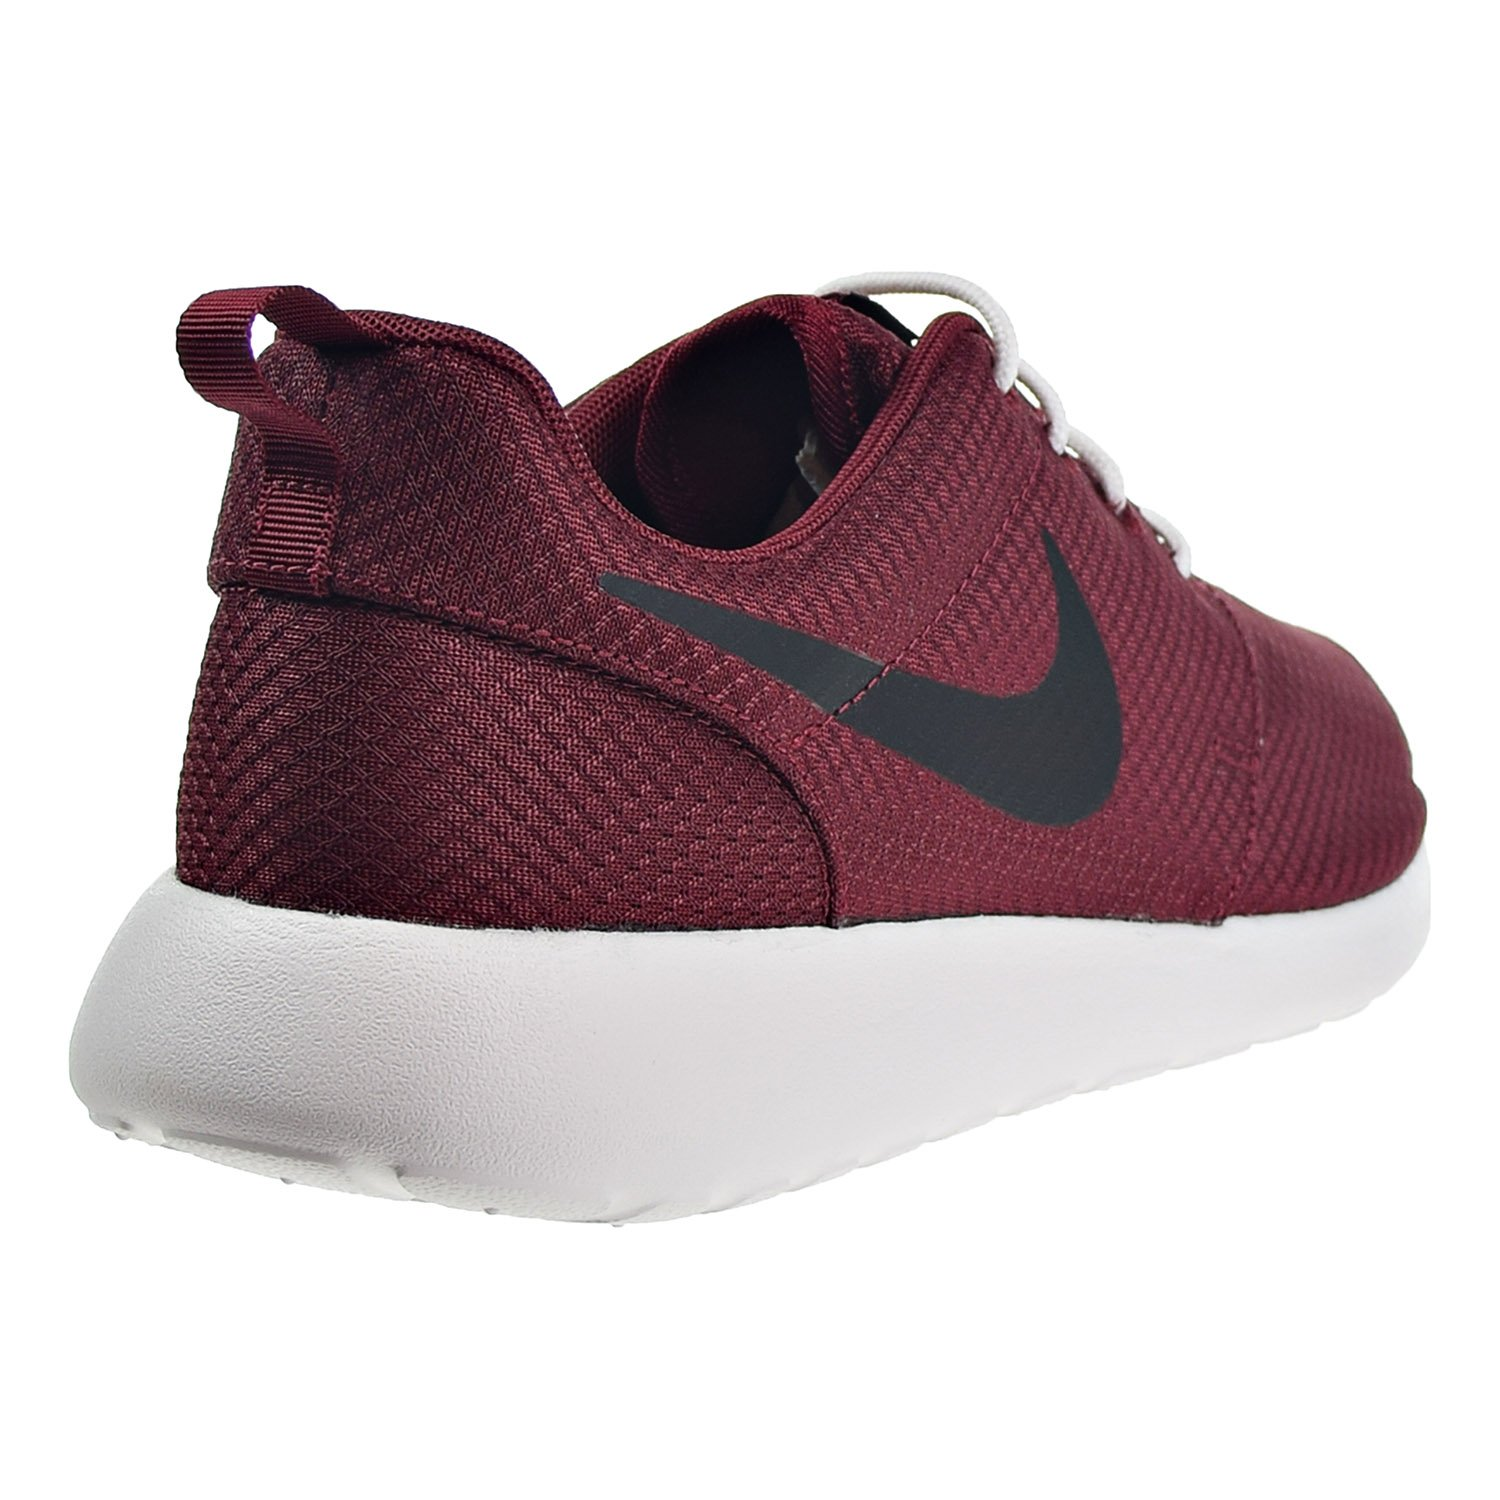 8076083be52 Nike Roshe One Mens Shoes Team Red Black Summit White 511881-607 (9 B(M)  US)  Buy Online at Low Prices in India - Amazon.in